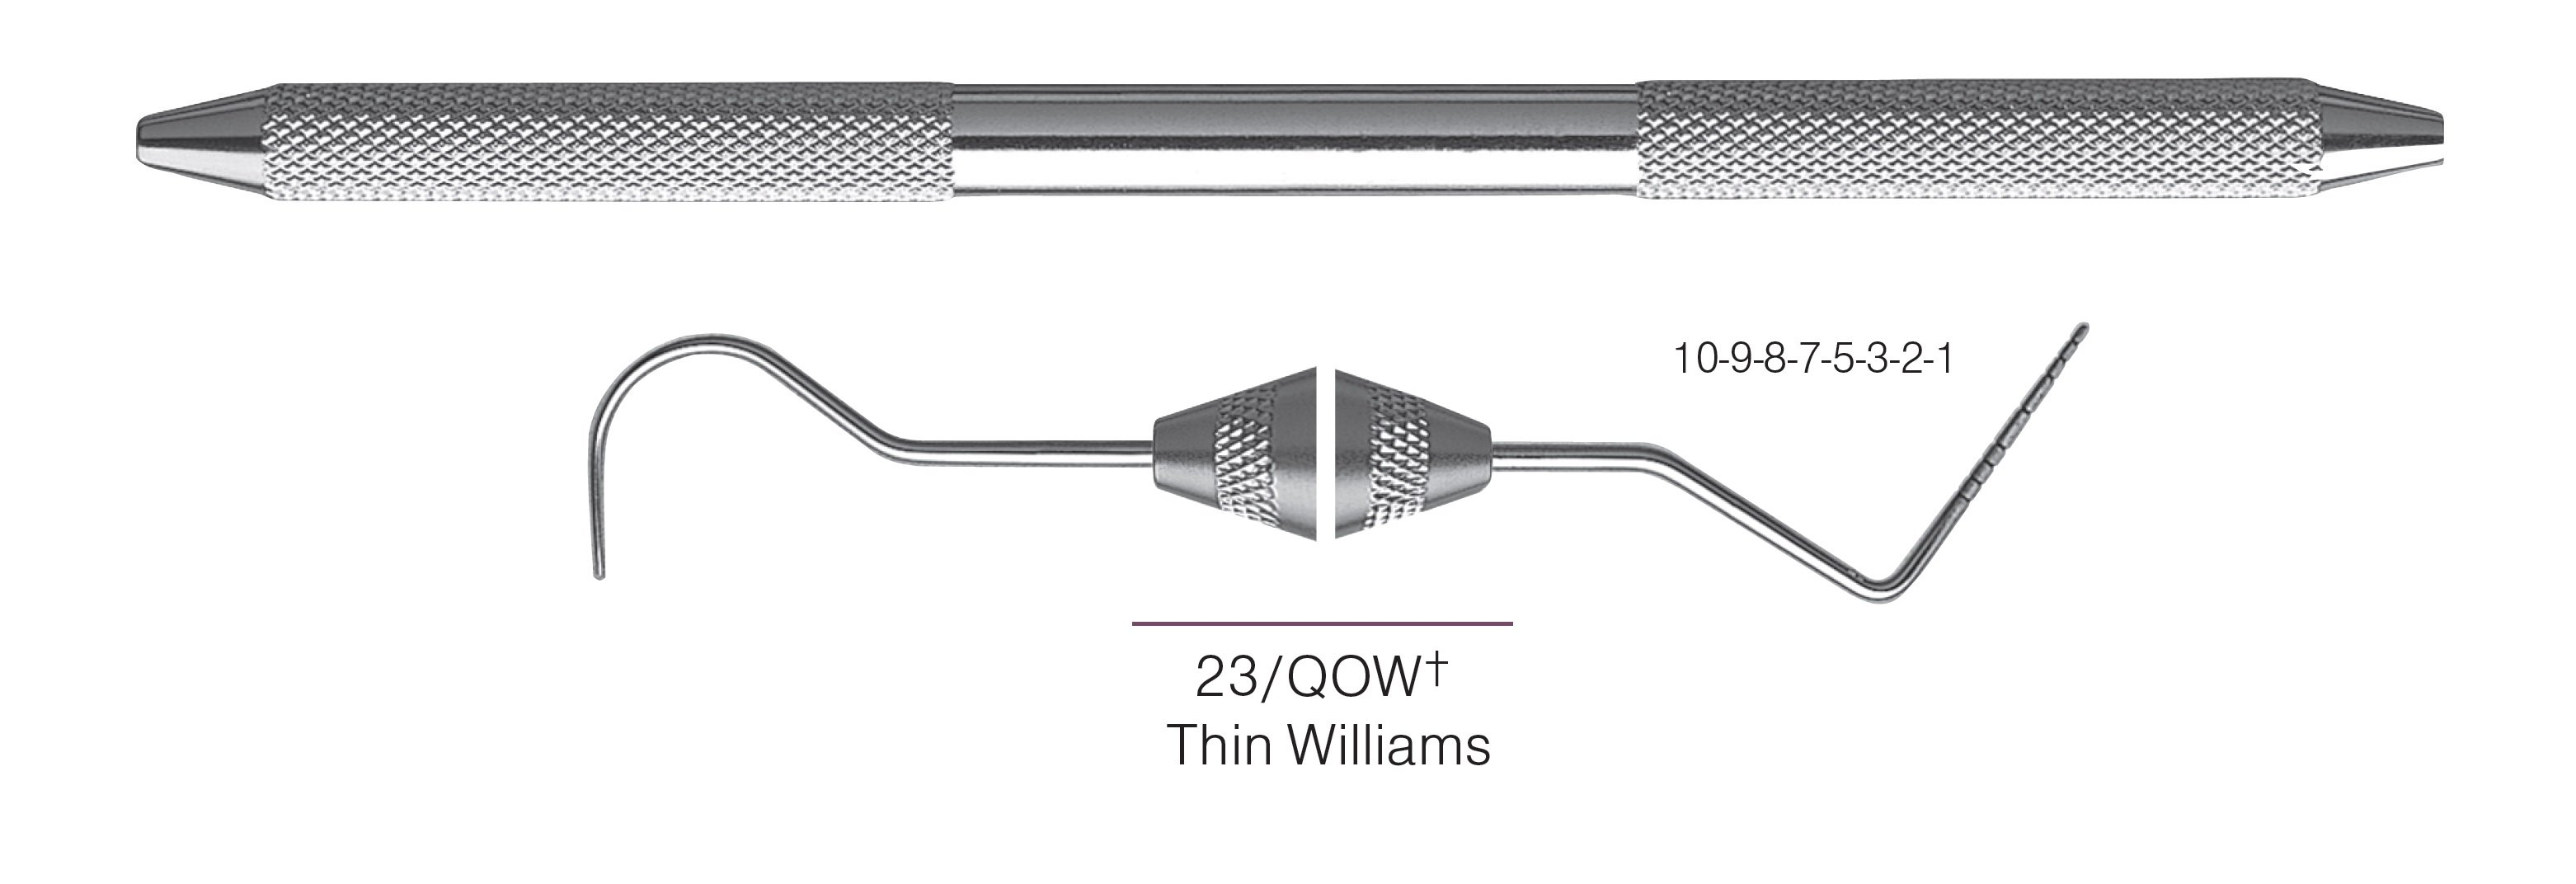 HF-XP23-QOW6-31, EXPROS, Explorer #23/QOW+ Thin Williams Probes, Black markings, 10-9-8-7-5-3-2-1 mm, Handle round, Double Ended